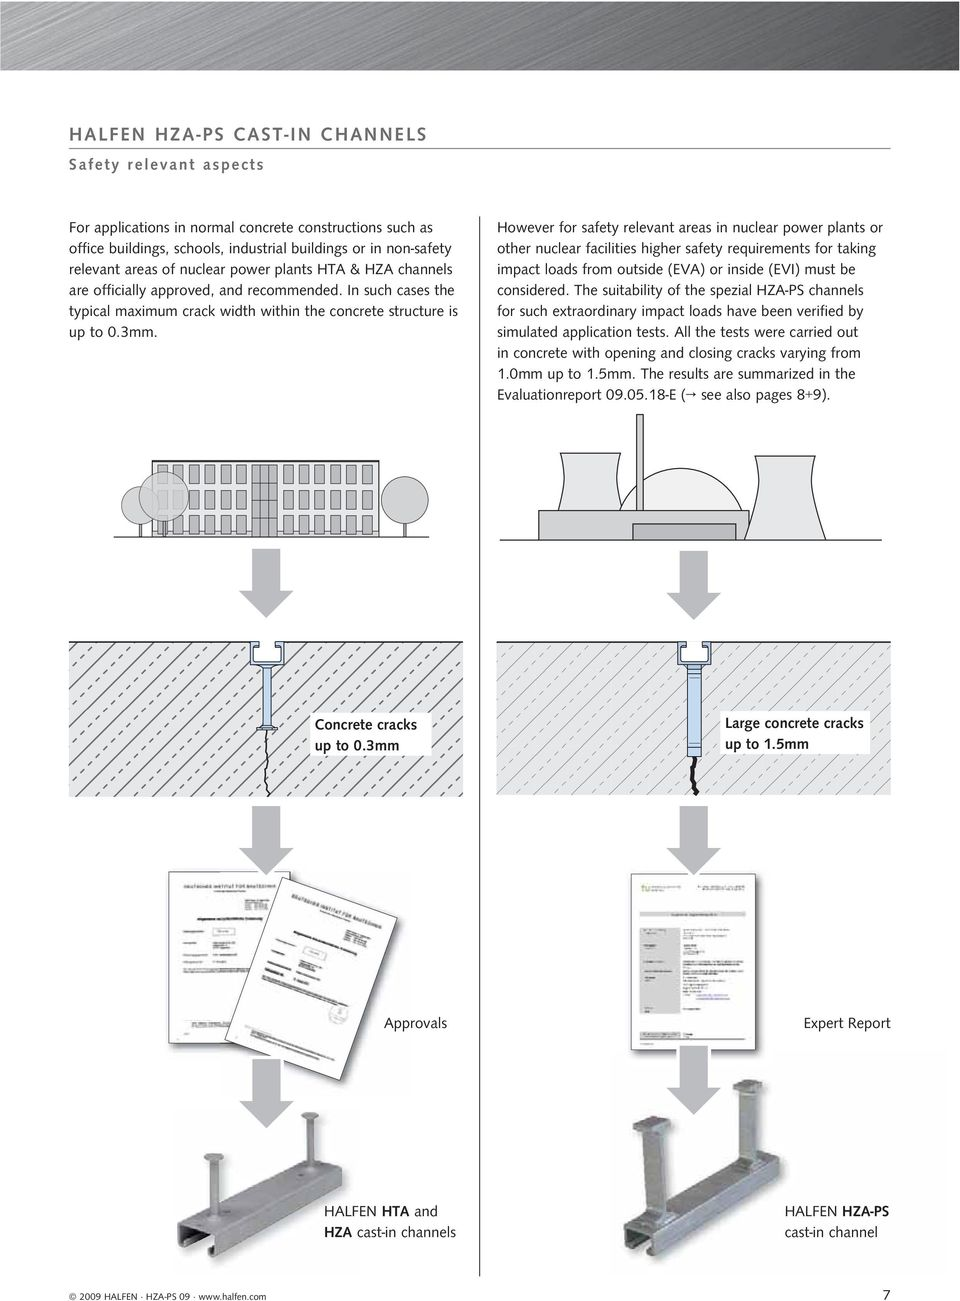 Halfen Cast In Channels Hza Ps 09 Concrete Pdf Inside A Nuclear Power Plant Diagram However For Safety Relevant Areas Plants Or Other Facilities Higher Requirements